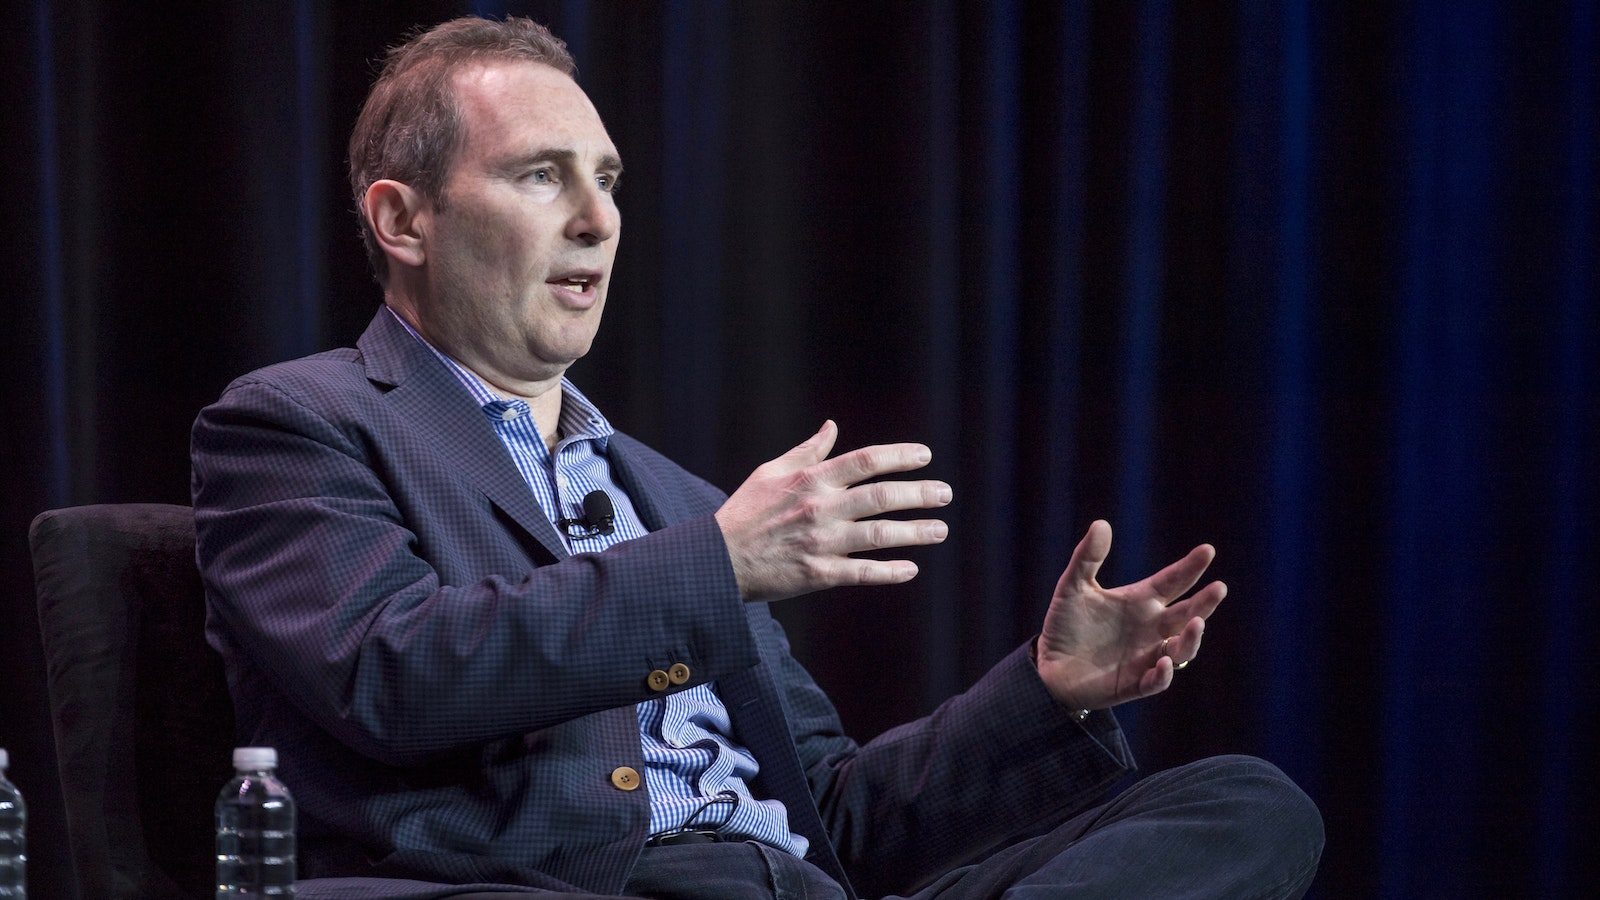 AWS CEO Andrew Jassy. Photo by Bloomberg.